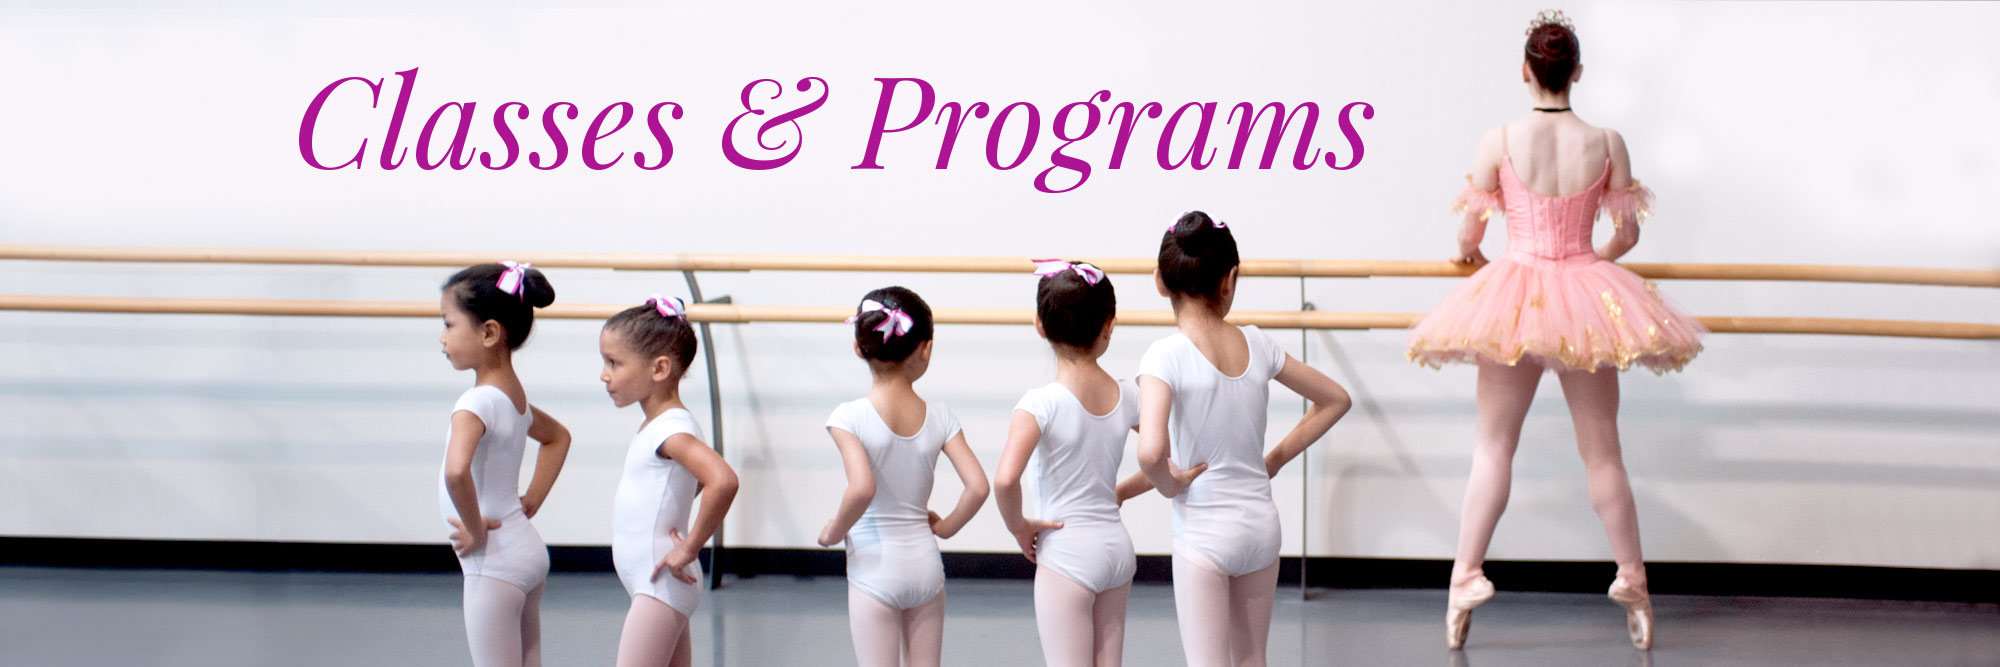 PNB School Classes and Programs. Image is of young dancers watching a ballerina in costume practice at the barre.